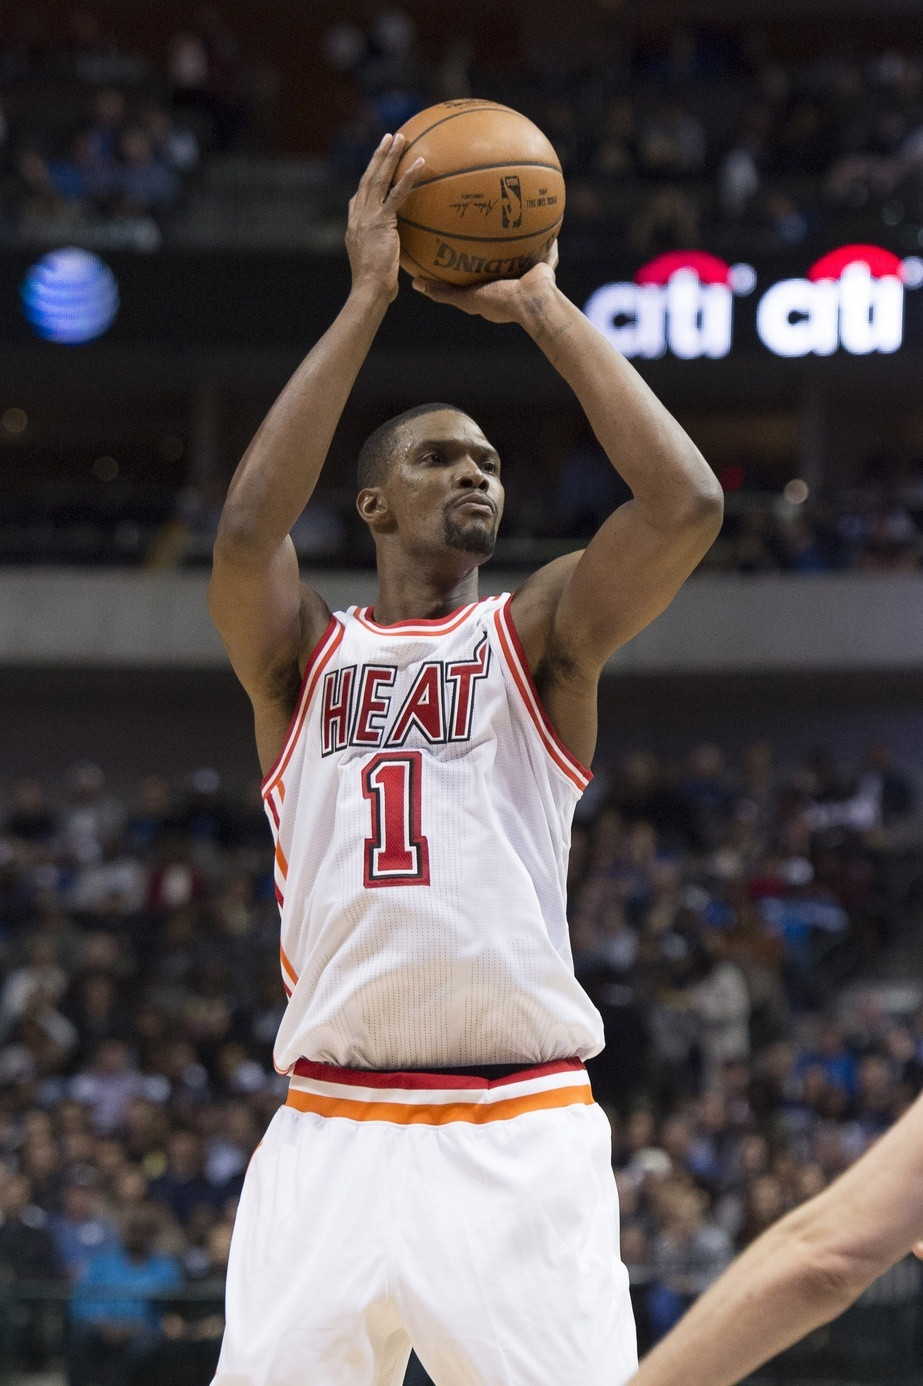 Chris Bosh Changed the NBA and Belongs in the Basketball Hall of